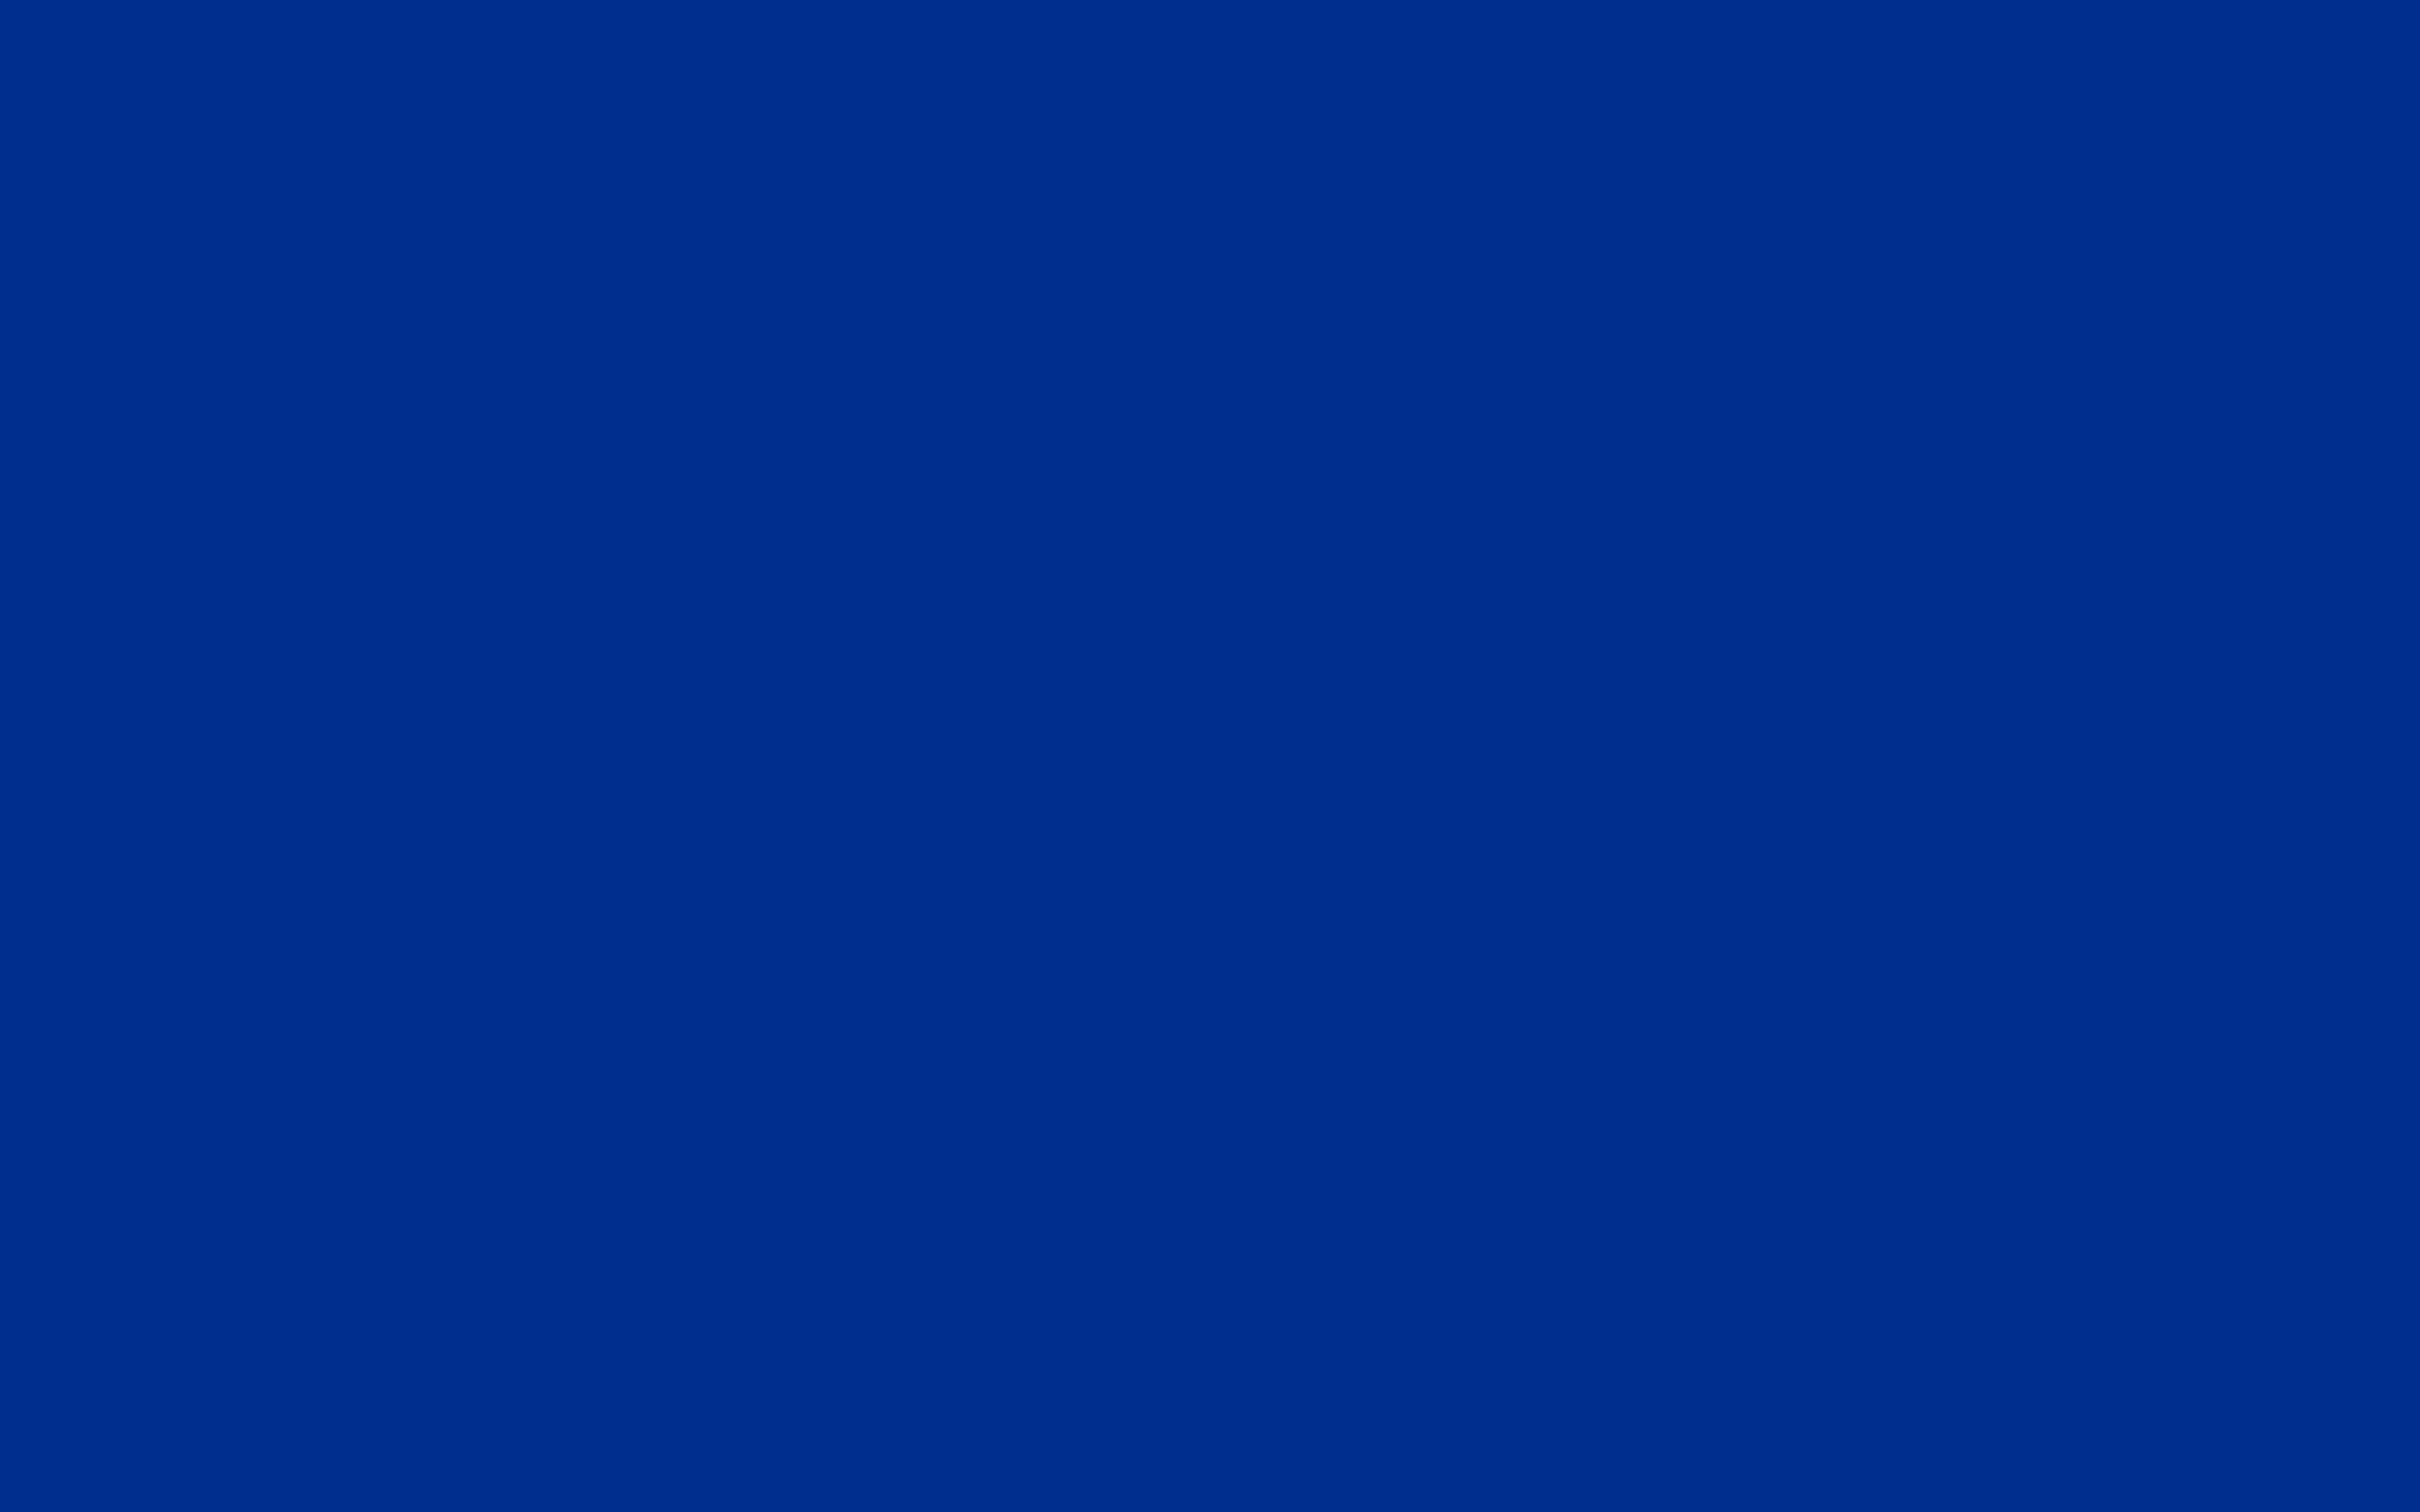 Blue solid color background view and download the below background 2880x1800